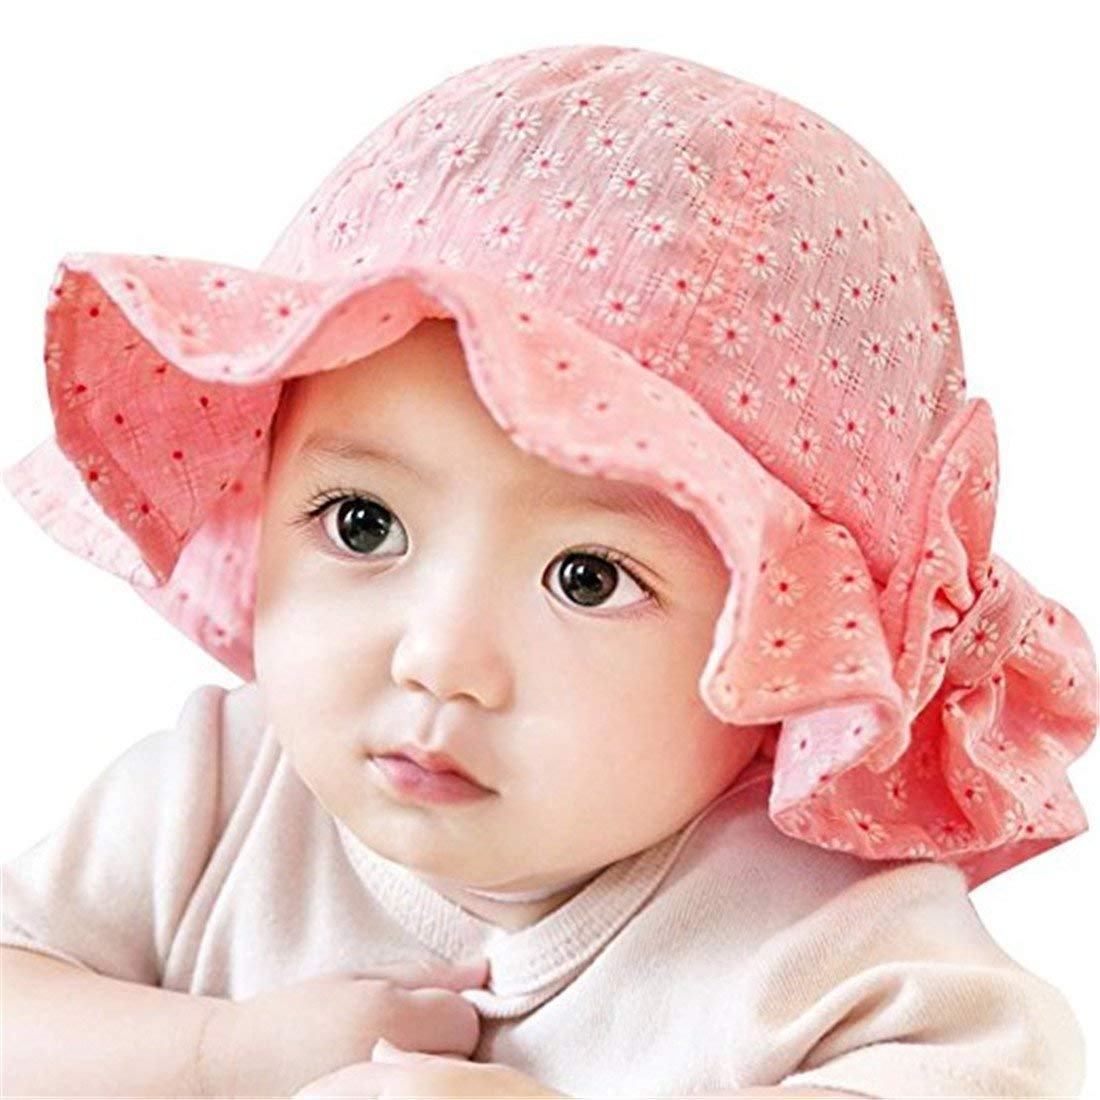 872604affcc Get Quotations · Baby Girl Bucket Hat Pink Floral Ruffle Bowknot UPF 50+  Outdoor Kids Sun Hat Cap